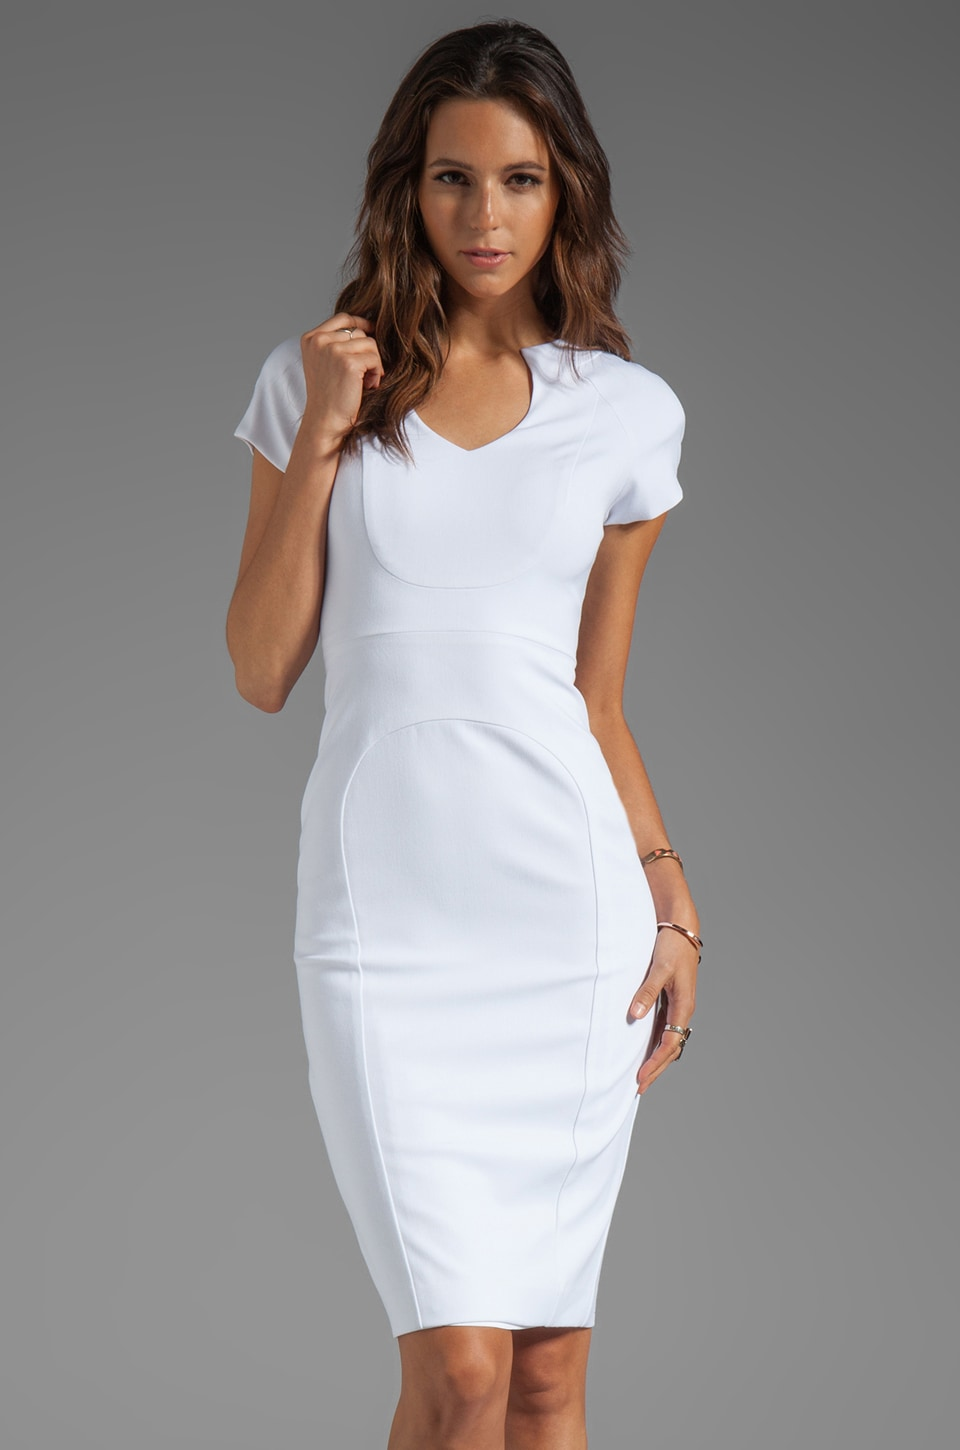 Black Halo Gypsy Rose Sheath Dress in White